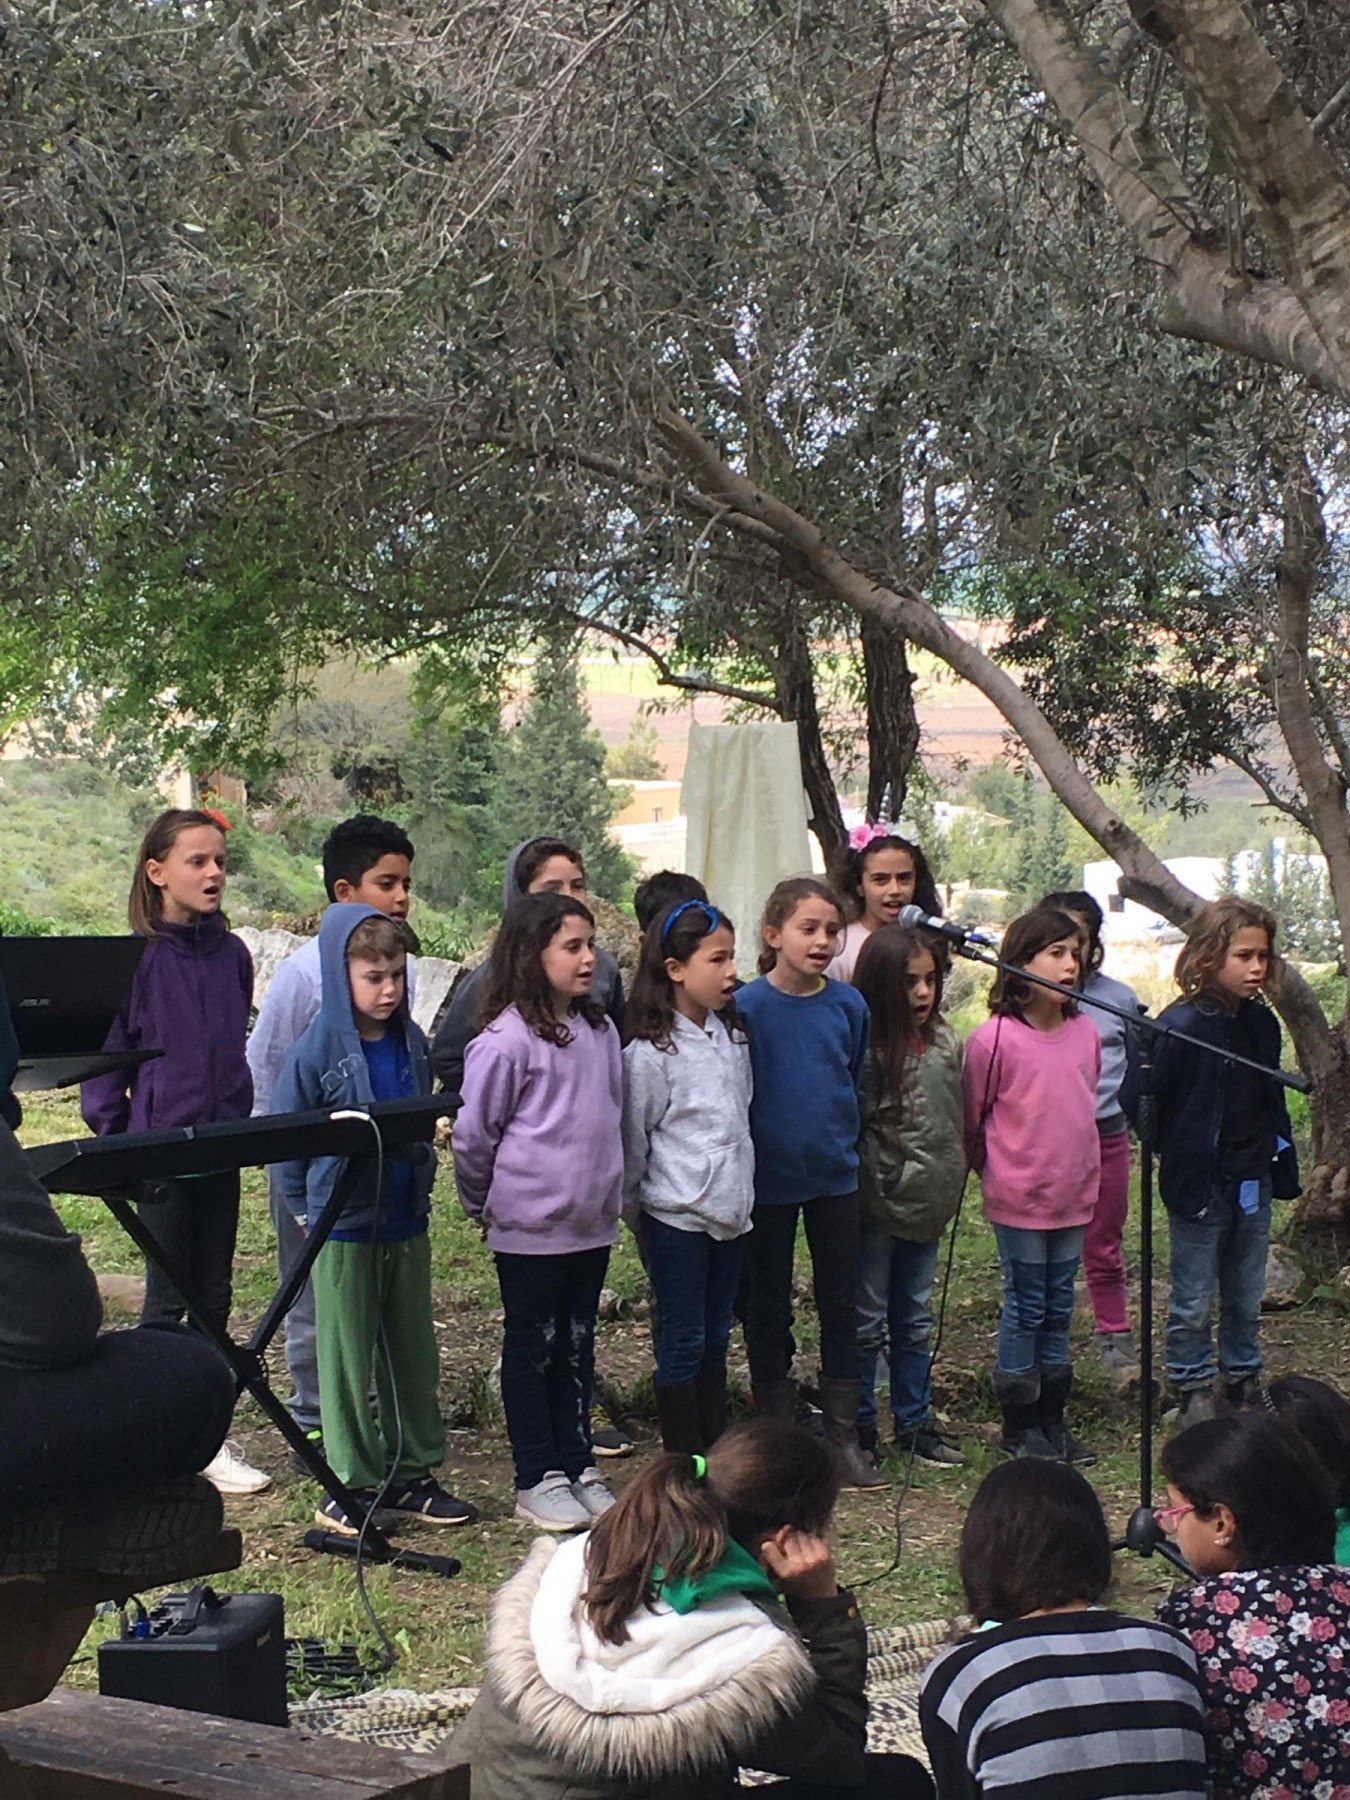 the songs of the village children